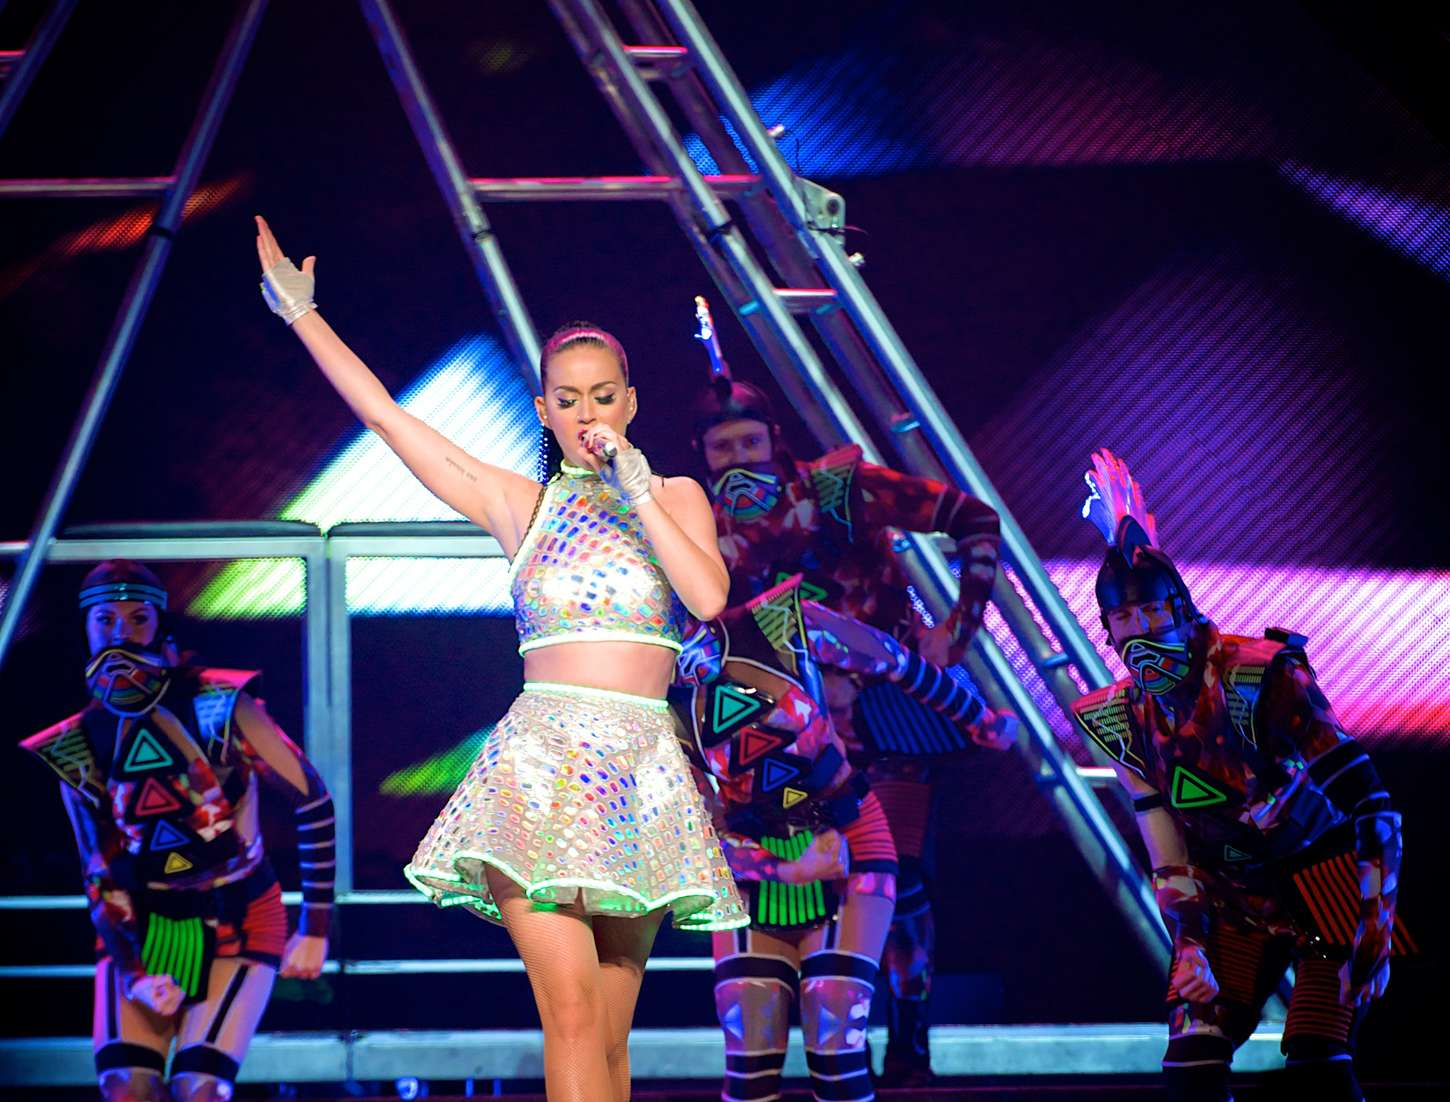 Katy perry tour dates in Melbourne